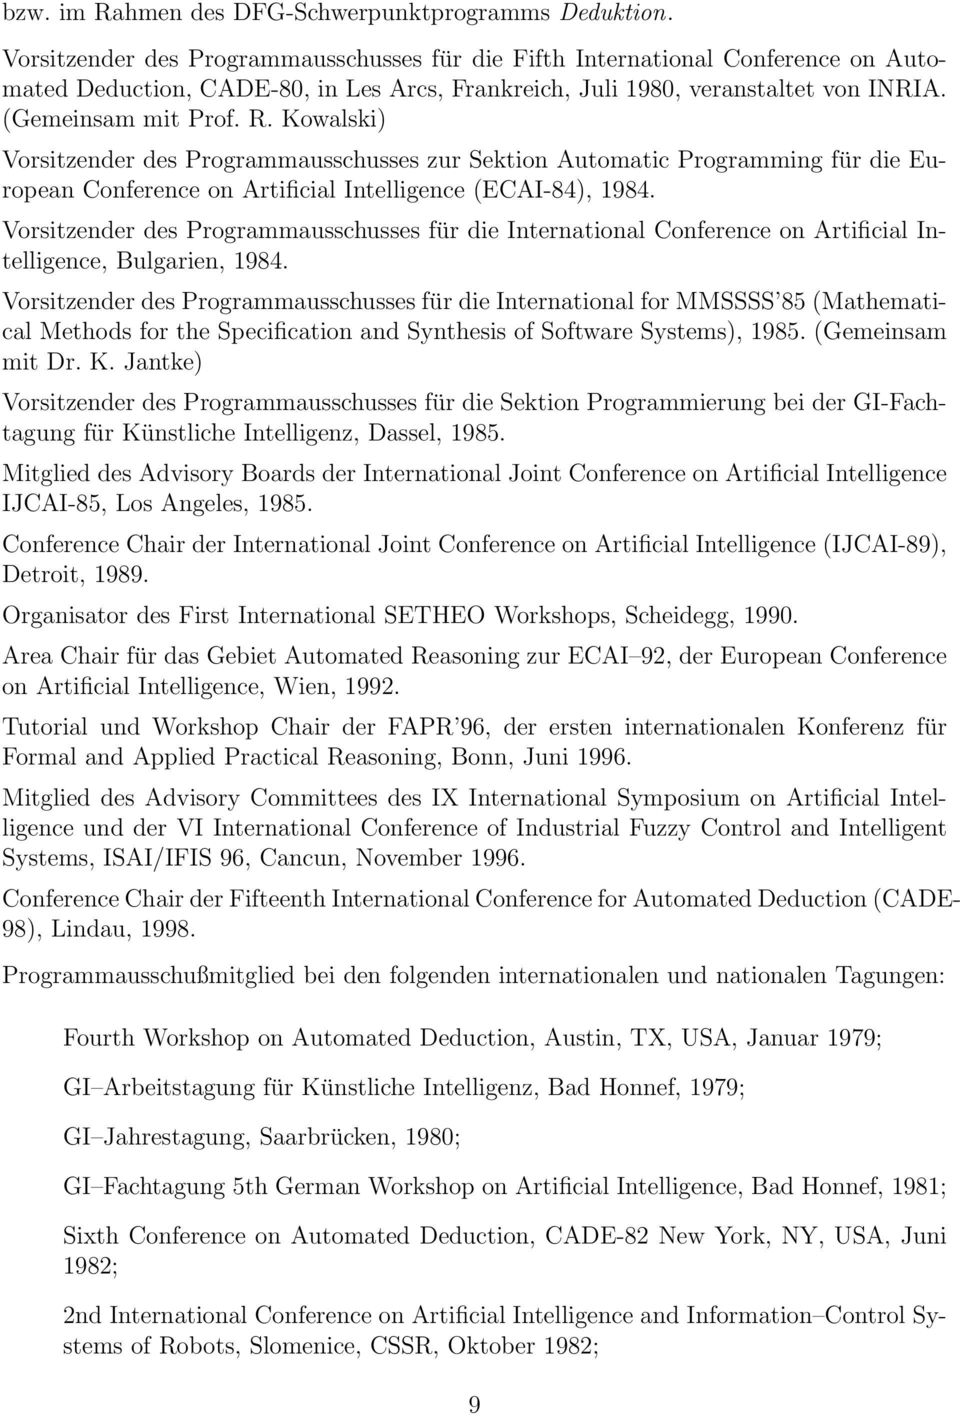 Kowalski) Vorsitzender des Programmausschusses zur Sektion Automatic Programming für die European Conference on Artificial Intelligence (ECAI-84), 1984.